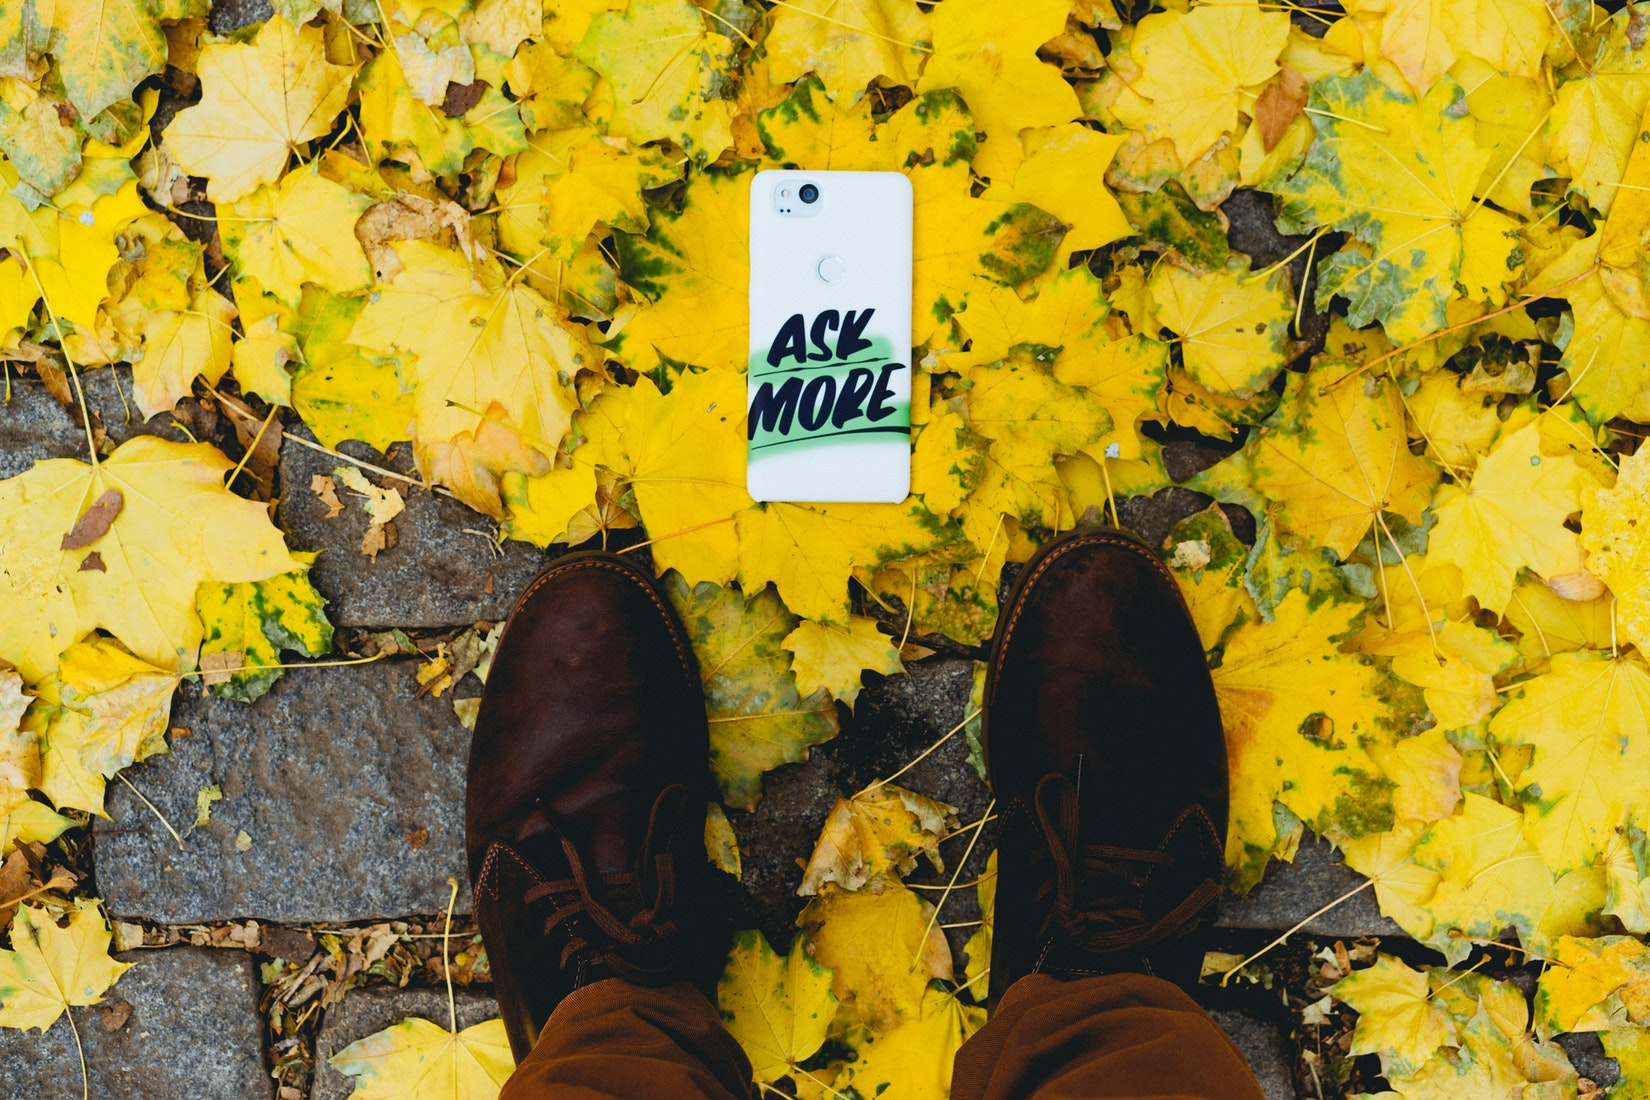 A Google Live Case on yellow leaves and mens brown shoes